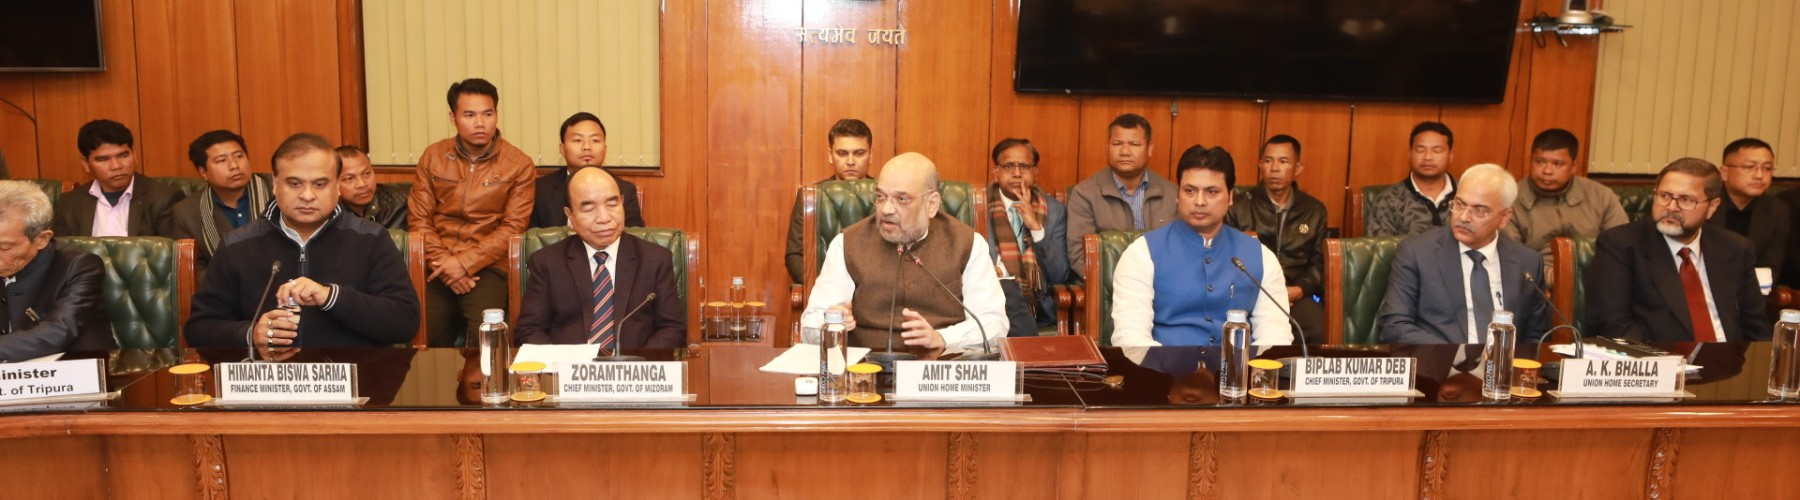 HM Shri Amit Shah presiding over the signing of an agreement to end the Bru-Reang Refugee Crisis  in Tripura , between Government of India, Governments of Tripura and Mizoram and Bru-Reang representatives in New Delhi, on Jan 16, 2020.